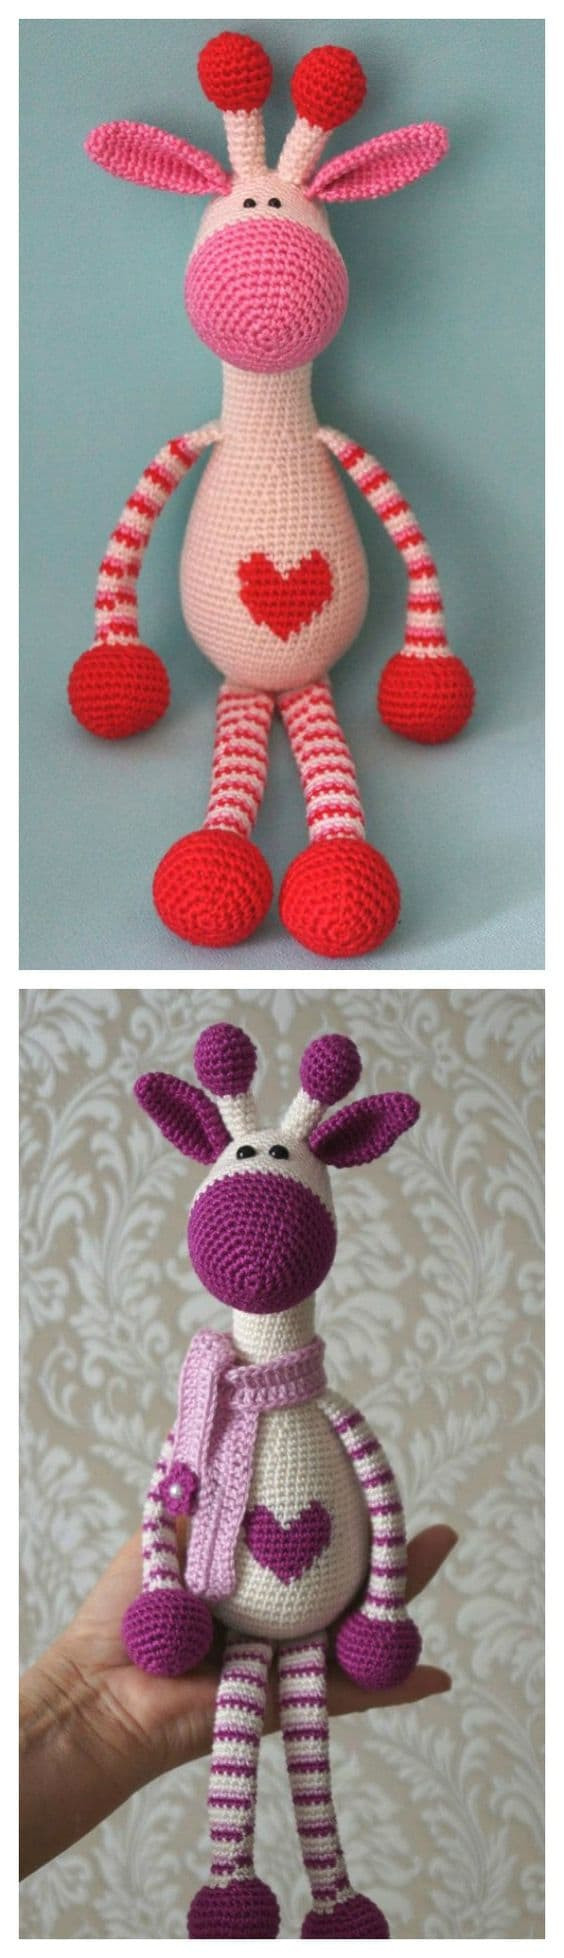 Crochet Giraffe Pattern Beautiful Crochet Giraffe the Cutest Ideas Ever Of Marvelous 41 Ideas Crochet Giraffe Pattern